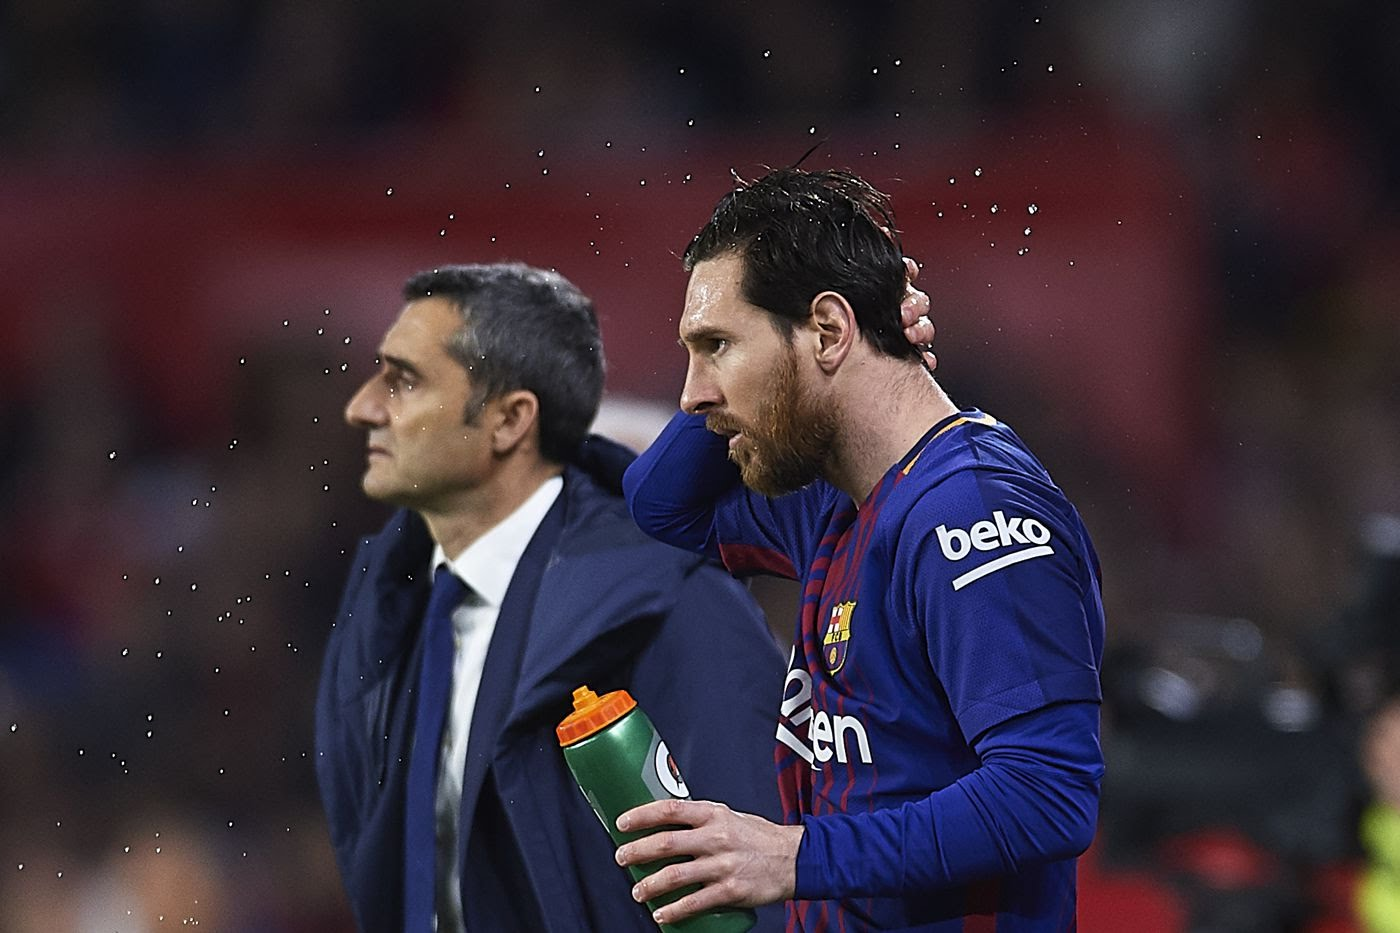 Barcelona's Manager talks about recent speculation of Messi leaving.